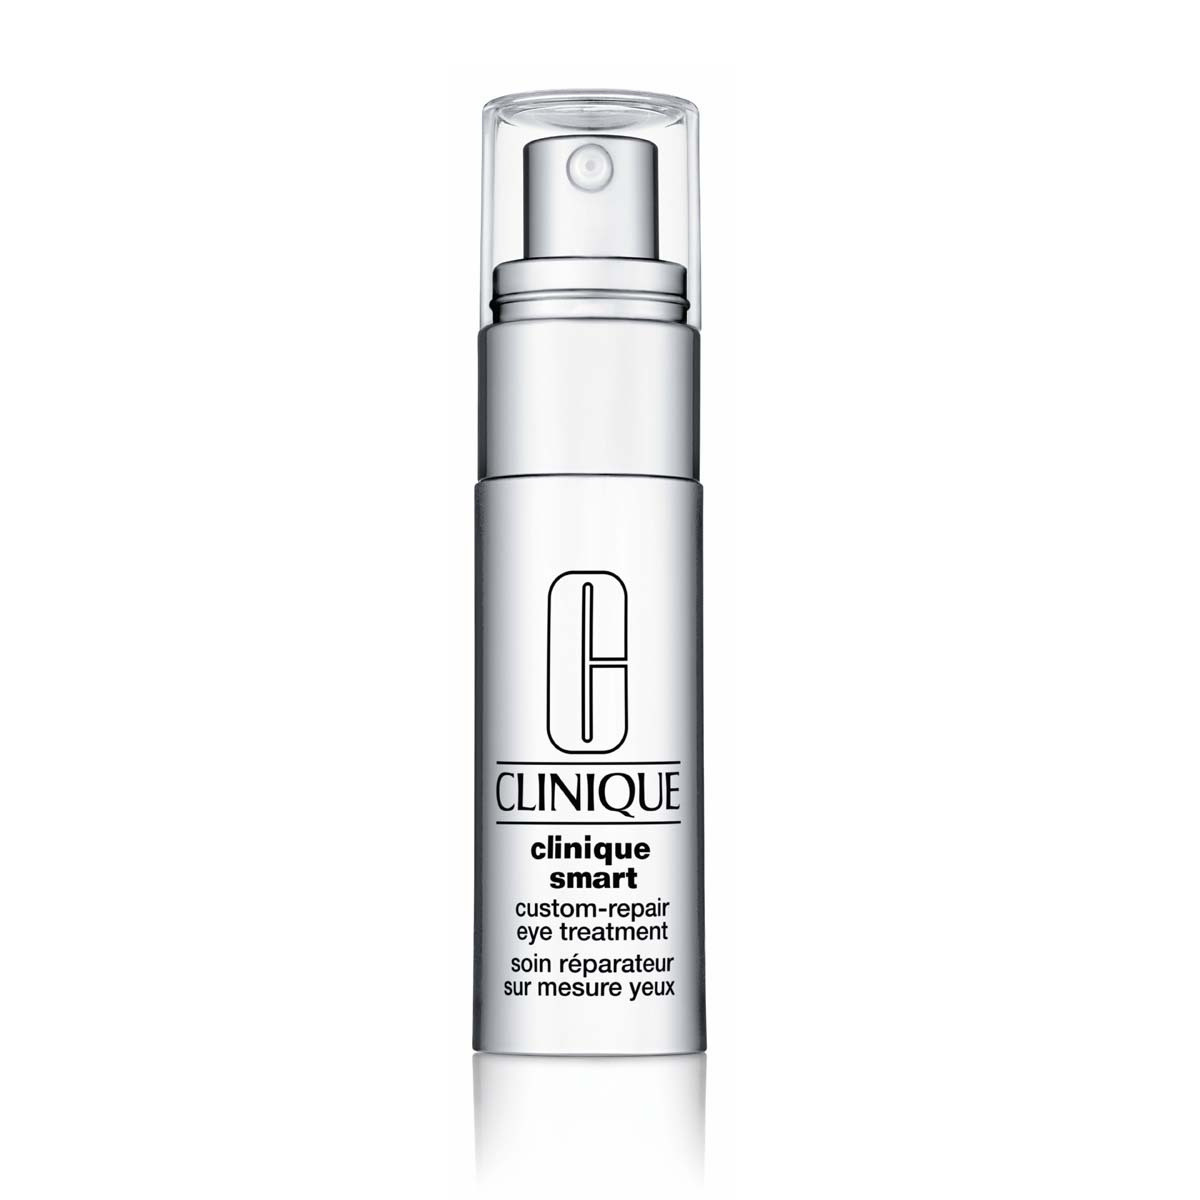 Clinique smart eyes 15 ml, Grigio, large image number 0